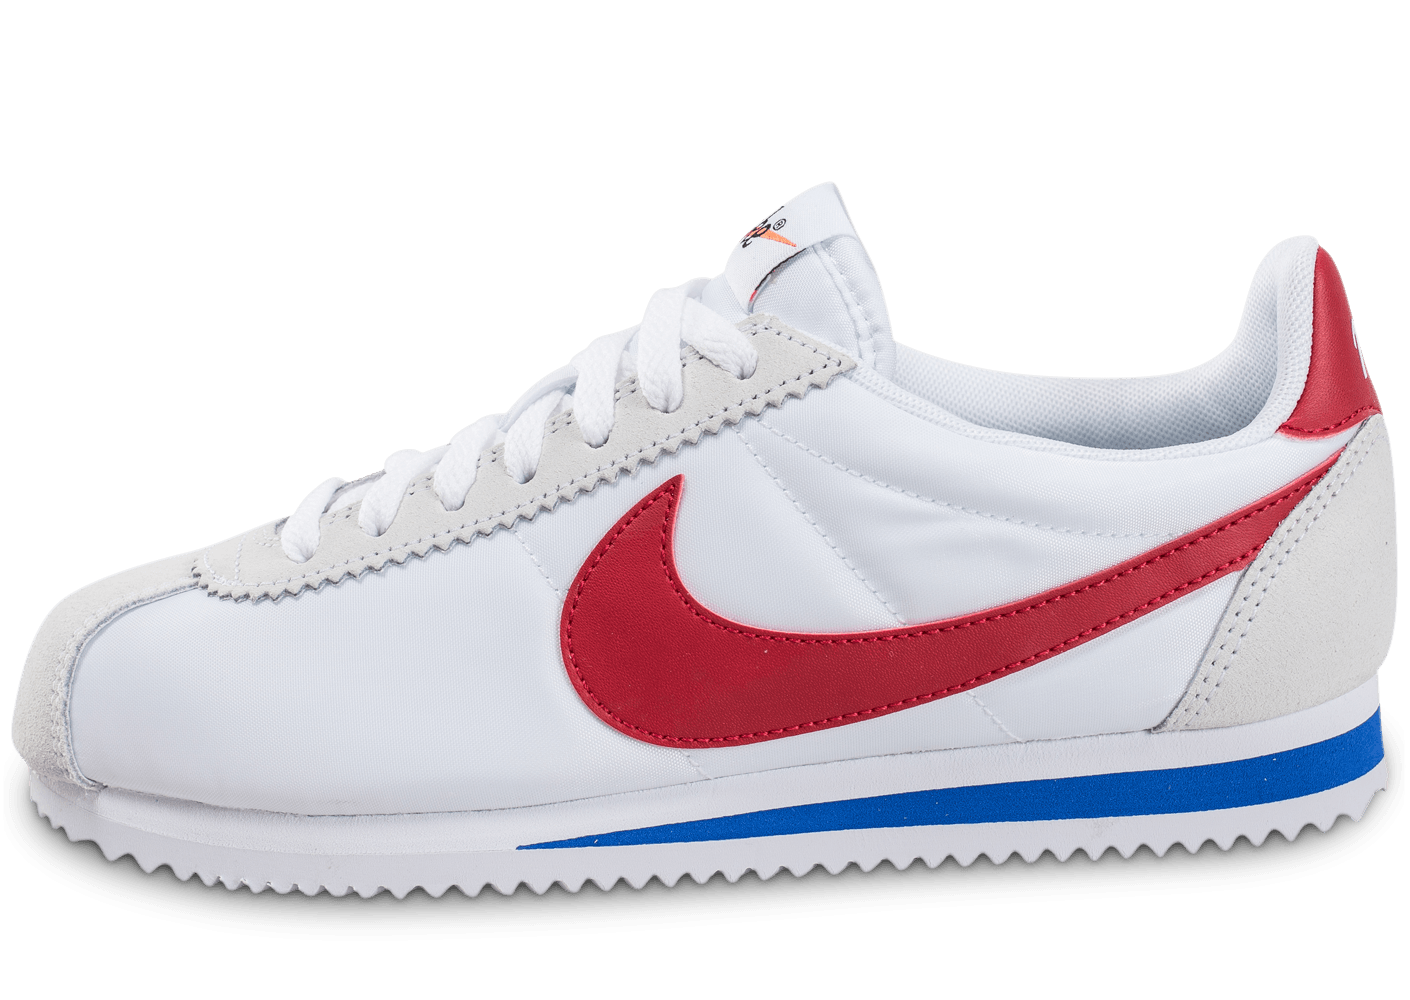 separation shoes 2746a e2346 ... chaussures nike classic cortez nylon w varsity red vue exterieure